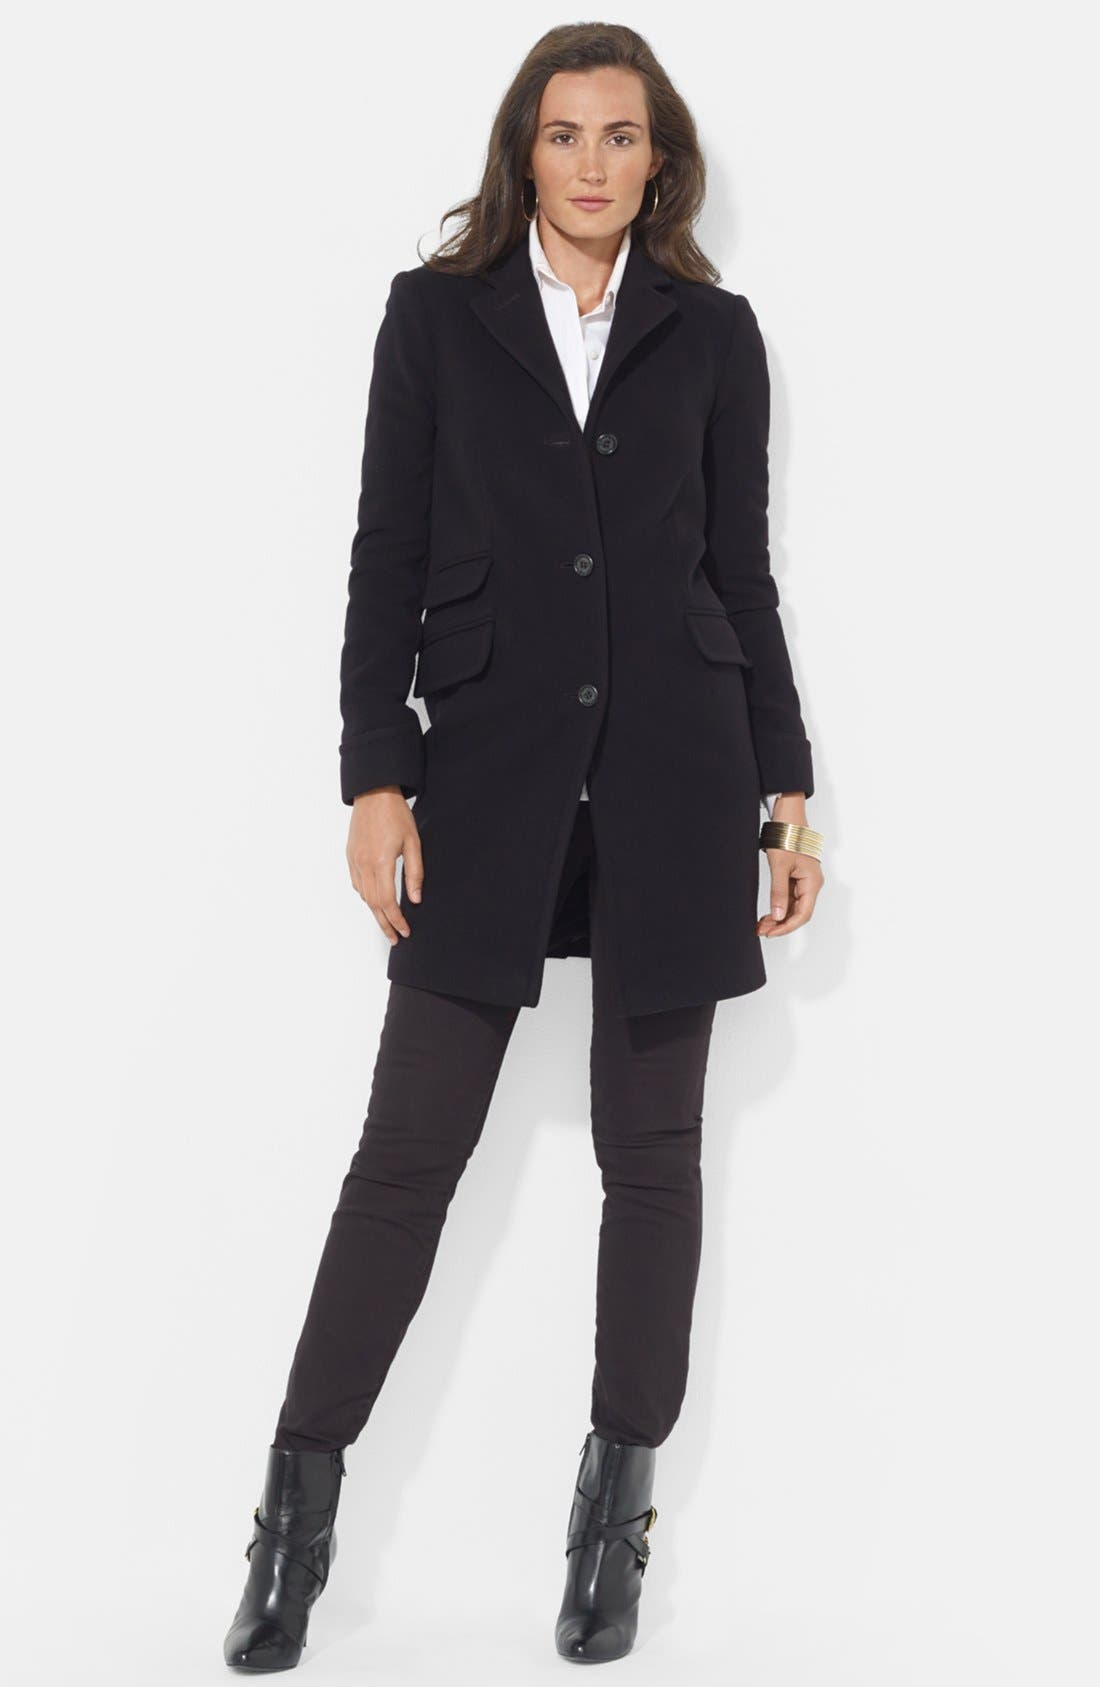 Alternate Image 1 Selected - Lauren Ralph Lauren Wool Blend Coat (Regular & Petite)